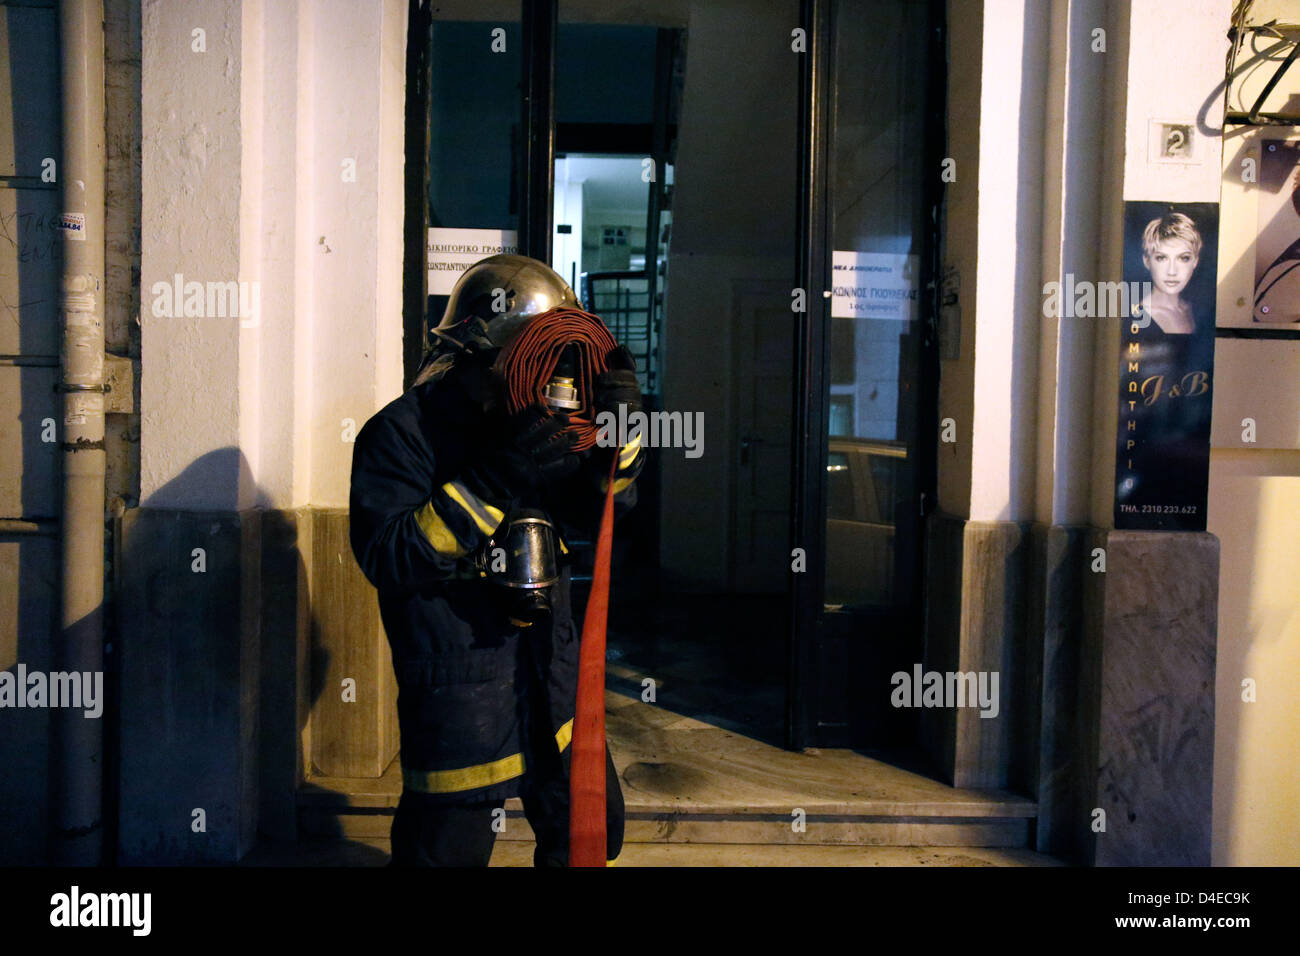 Thessaloniki, Greece. 12th March 2013. Arson attack with gas canisters in the offices of New Democracy MPs. A firefighter - Stock Image